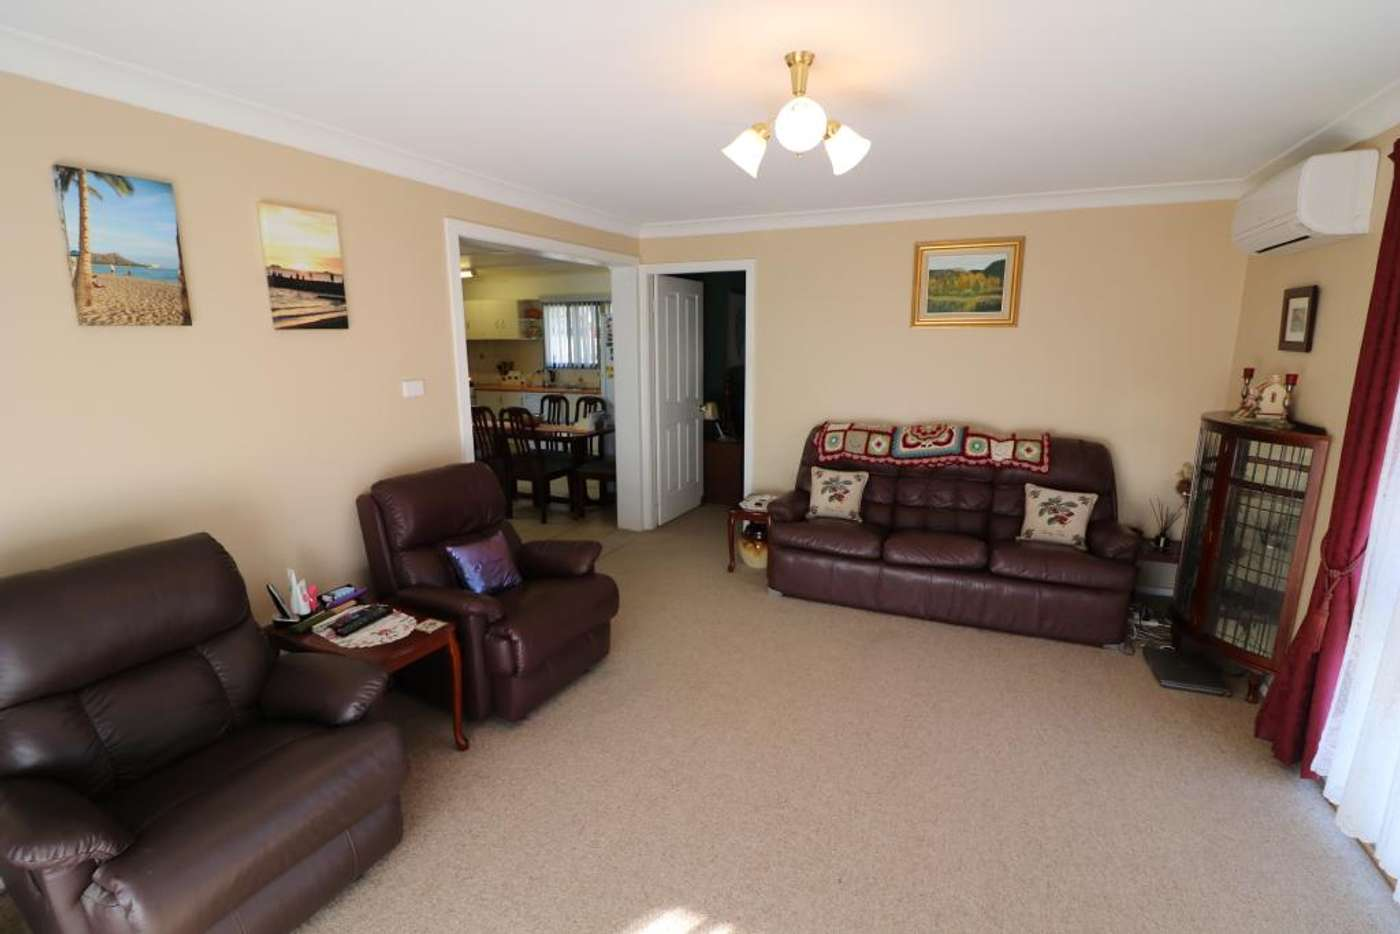 Seventh view of Homely house listing, 476 Merriwa Road, Denman NSW 2328